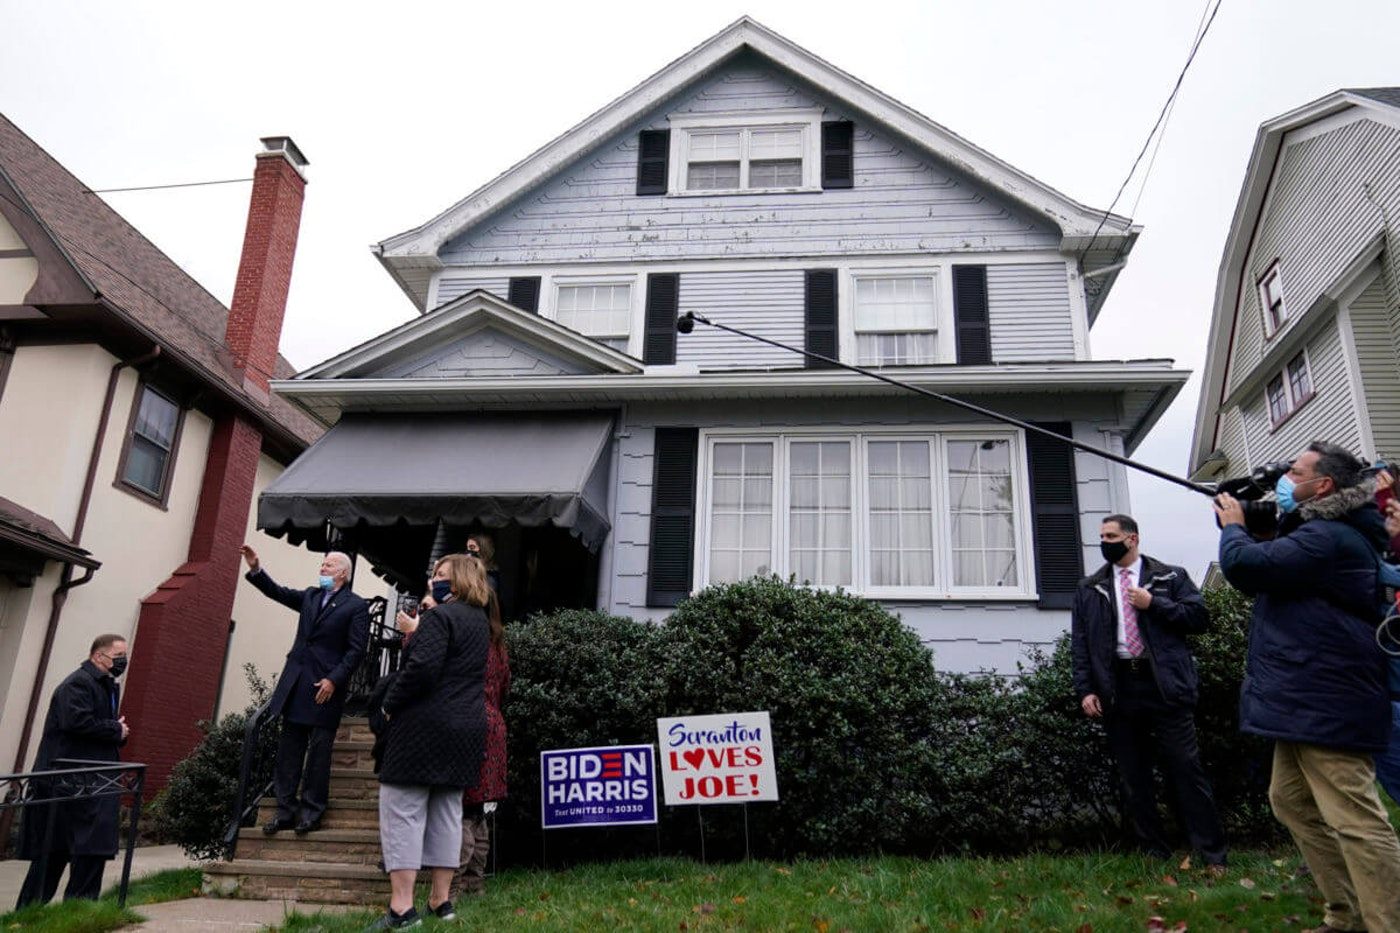 Democratic presidential candidate former Vice President Joe Biden waves while visiting his boyhood home during a stop in Scranton, Pa., Tuesday, Nov. 3, 2020. (AP Photo/Carolyn Kaster)